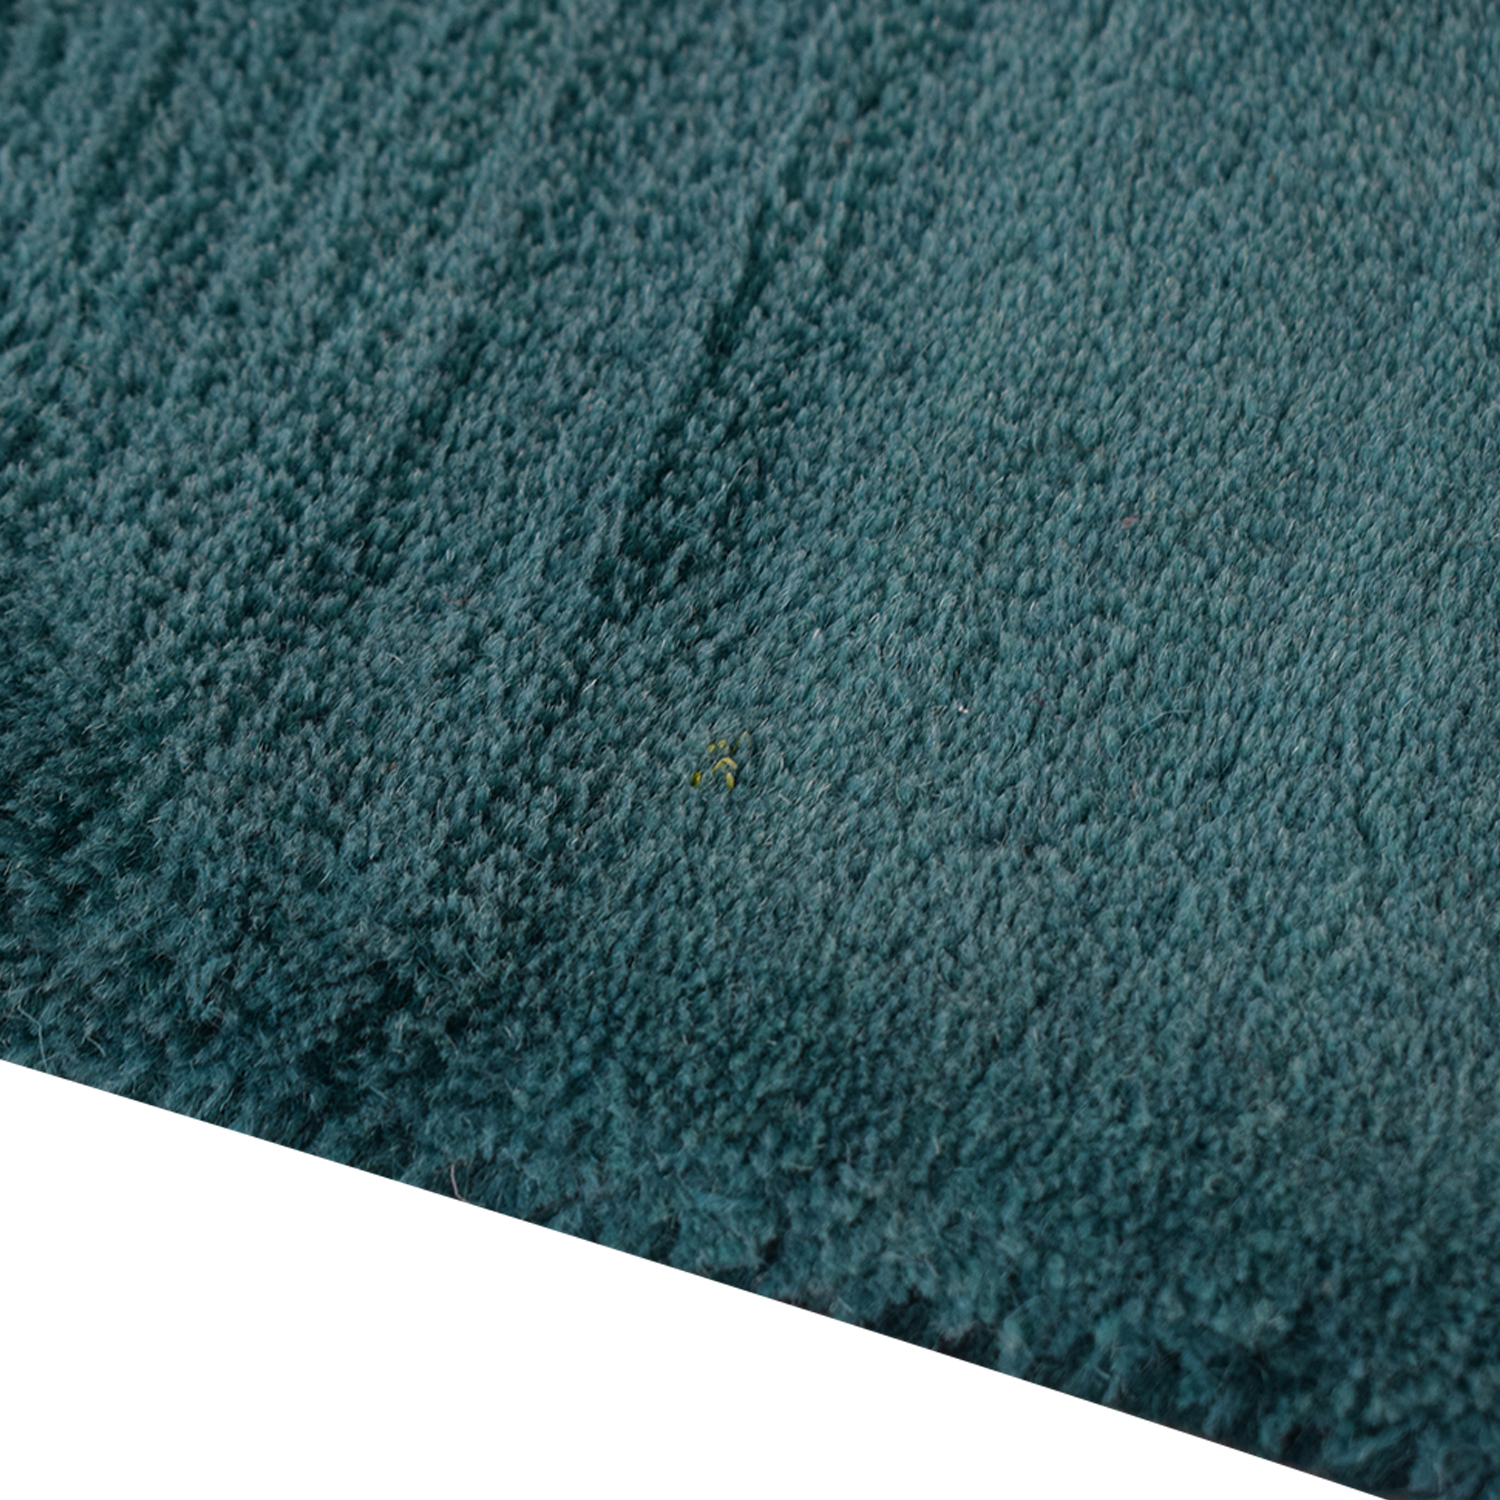 CB2 CB2 Ombre Teal Rug Rugs